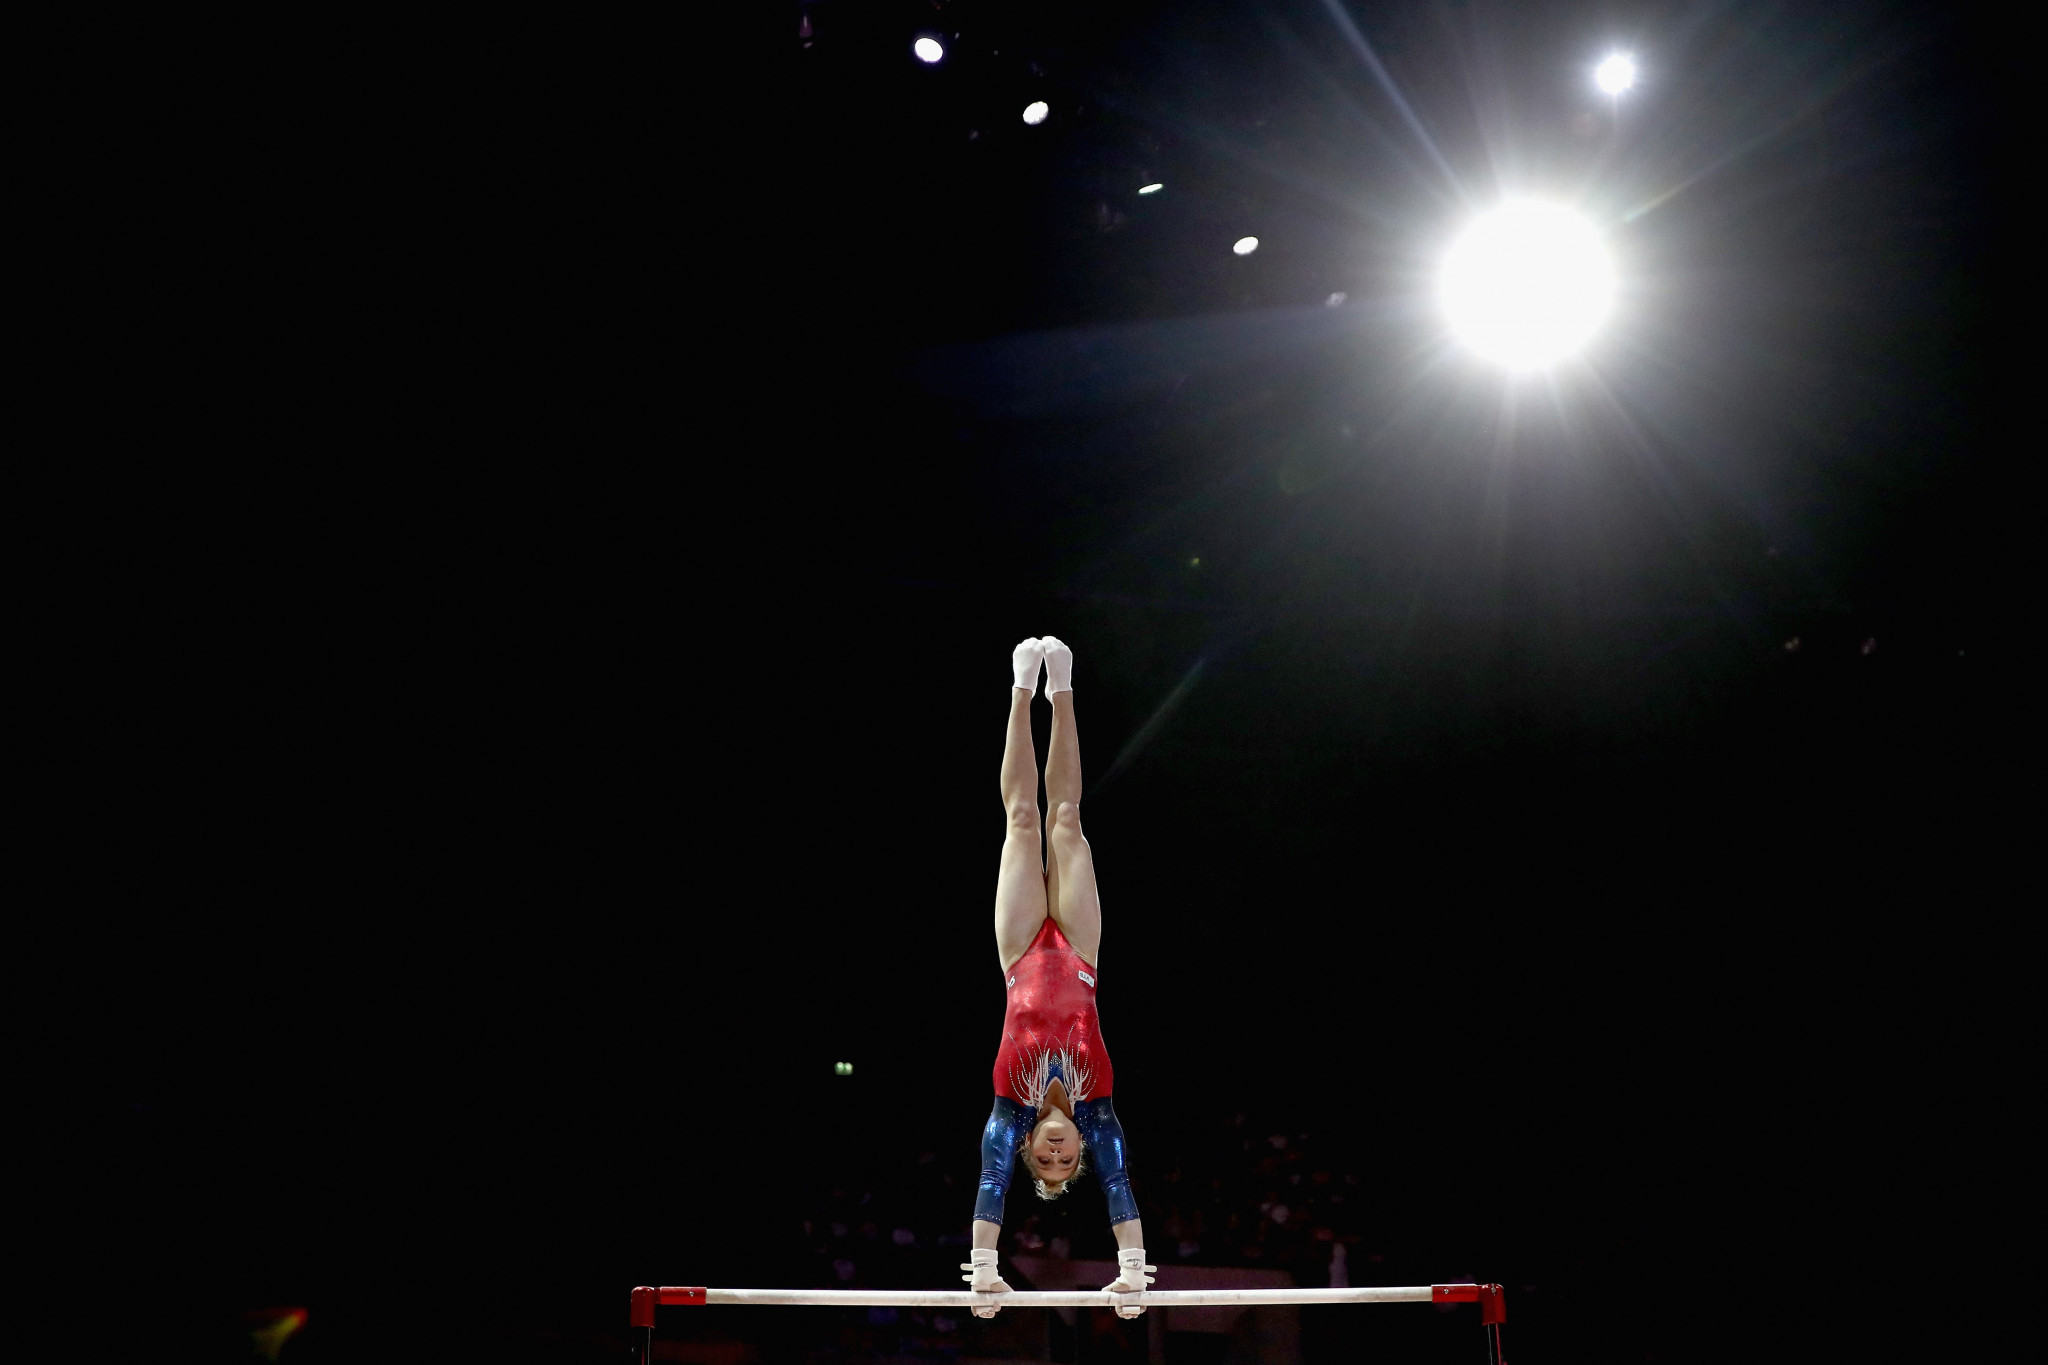 Aripova and Szujo share floor title at FIG World Challenge Cup in Varna